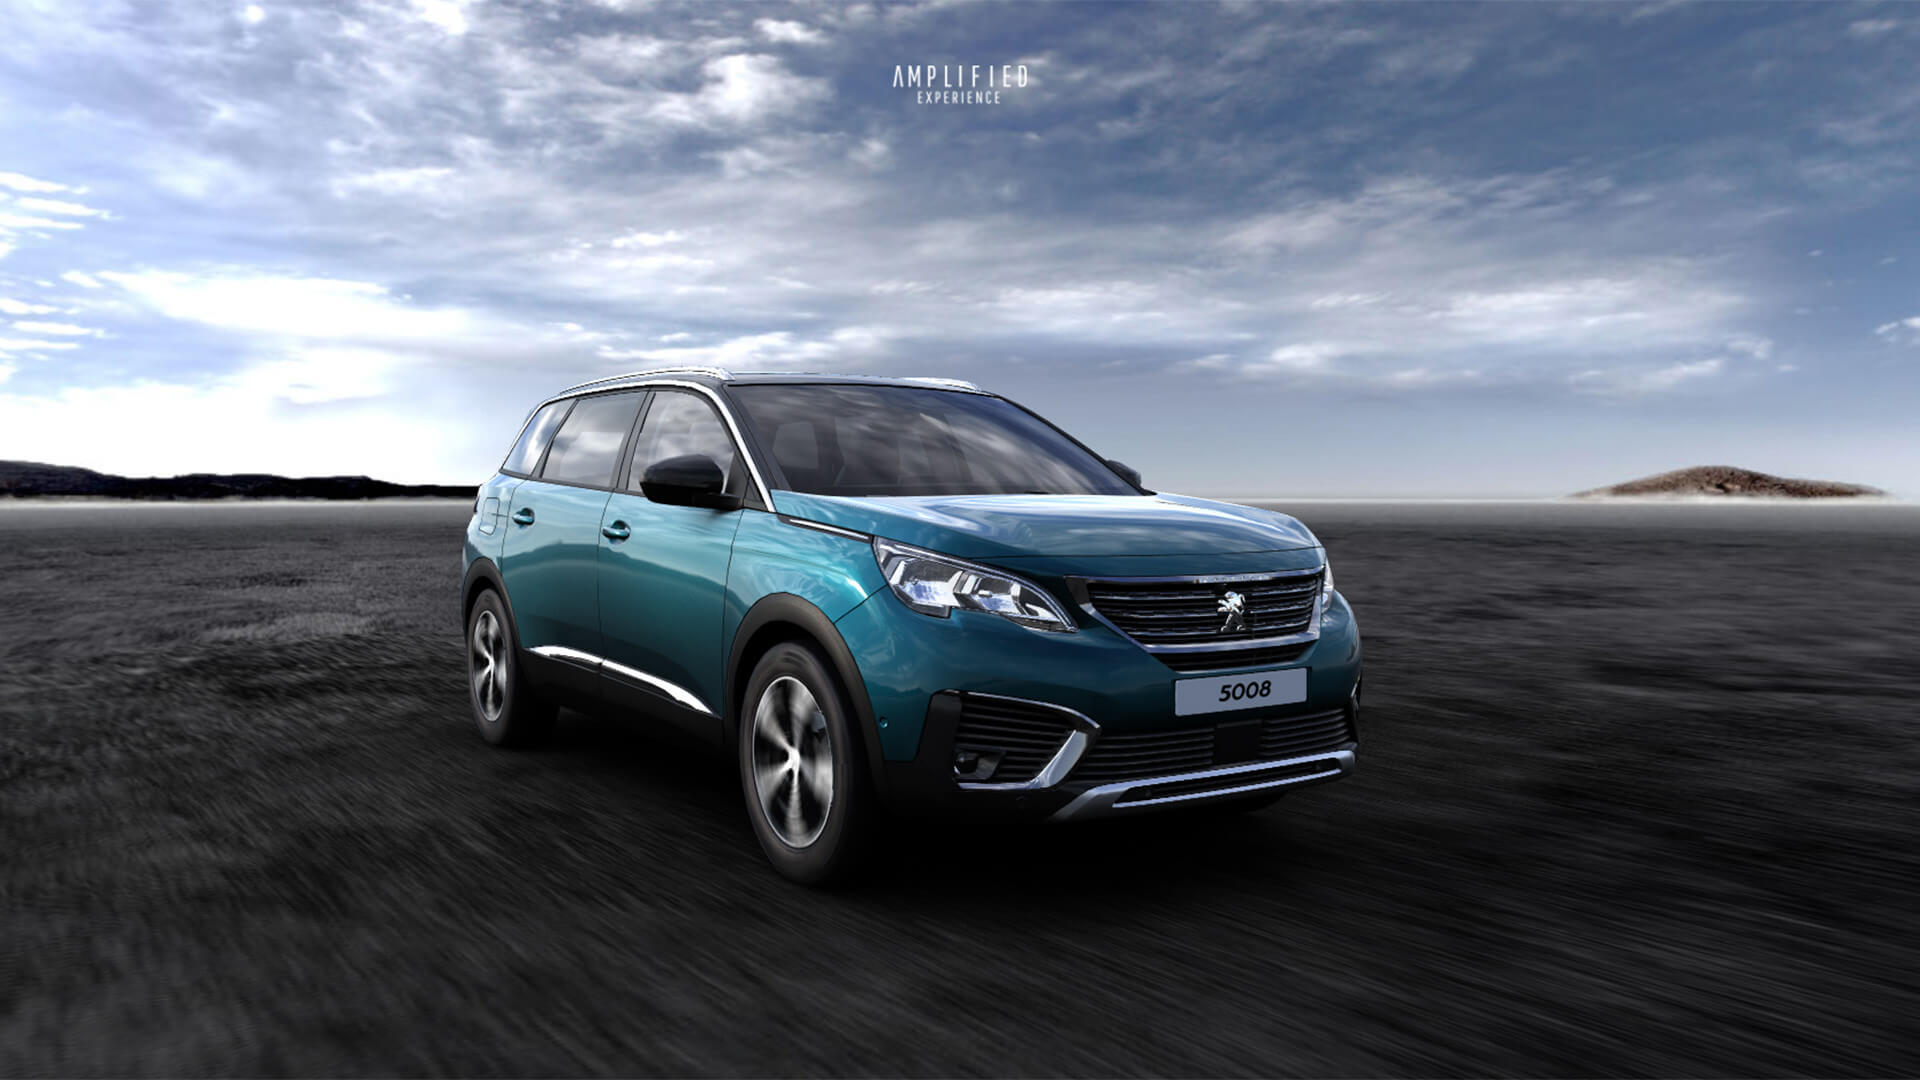 peugeot amplified experience